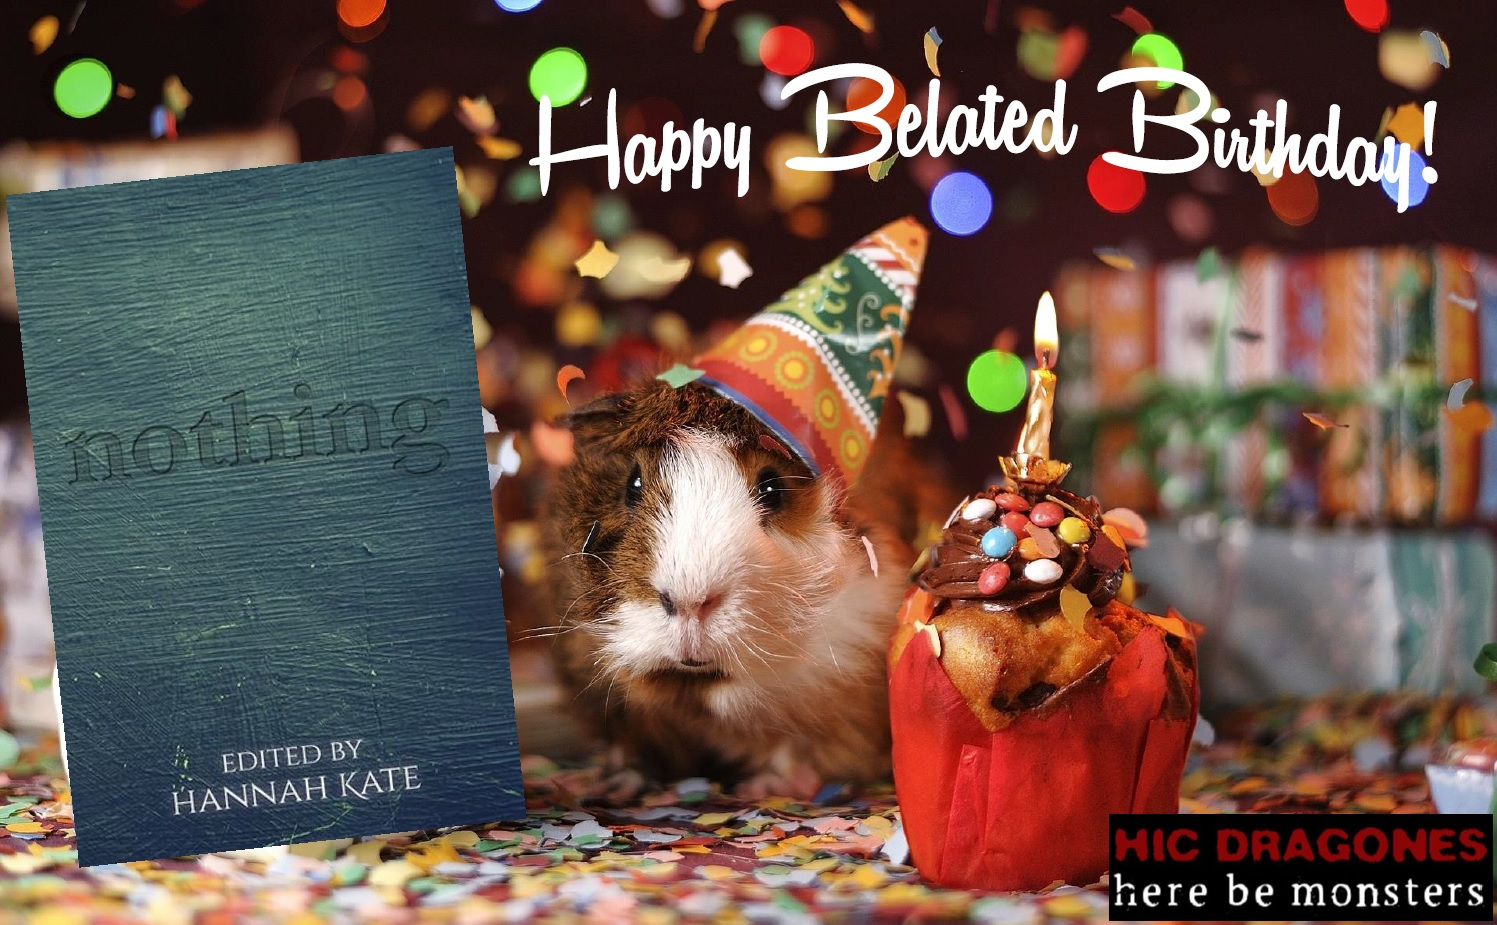 Cover of Nothing, with a guinea pig in a party hat and a cupcake. Caption reads 'Happy Belated Birthday!'